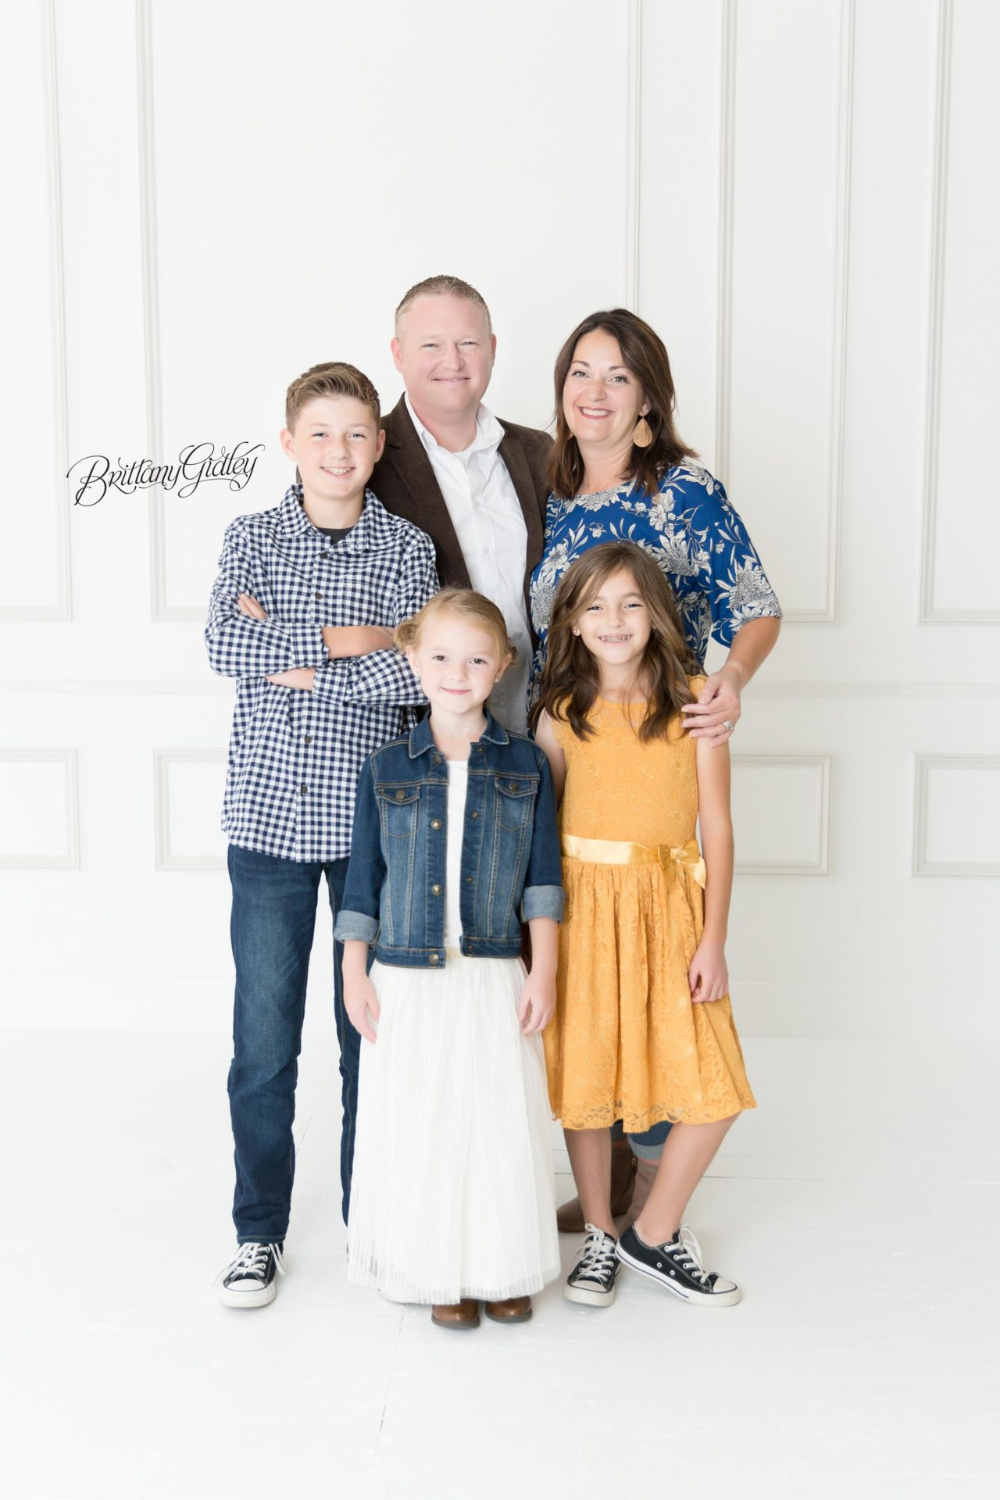 Grandparents Photo Shoot | The Winter Family #winterfamilyphotography Grandparents Photo Shoot | The Winter Family #winterfamilyphotography